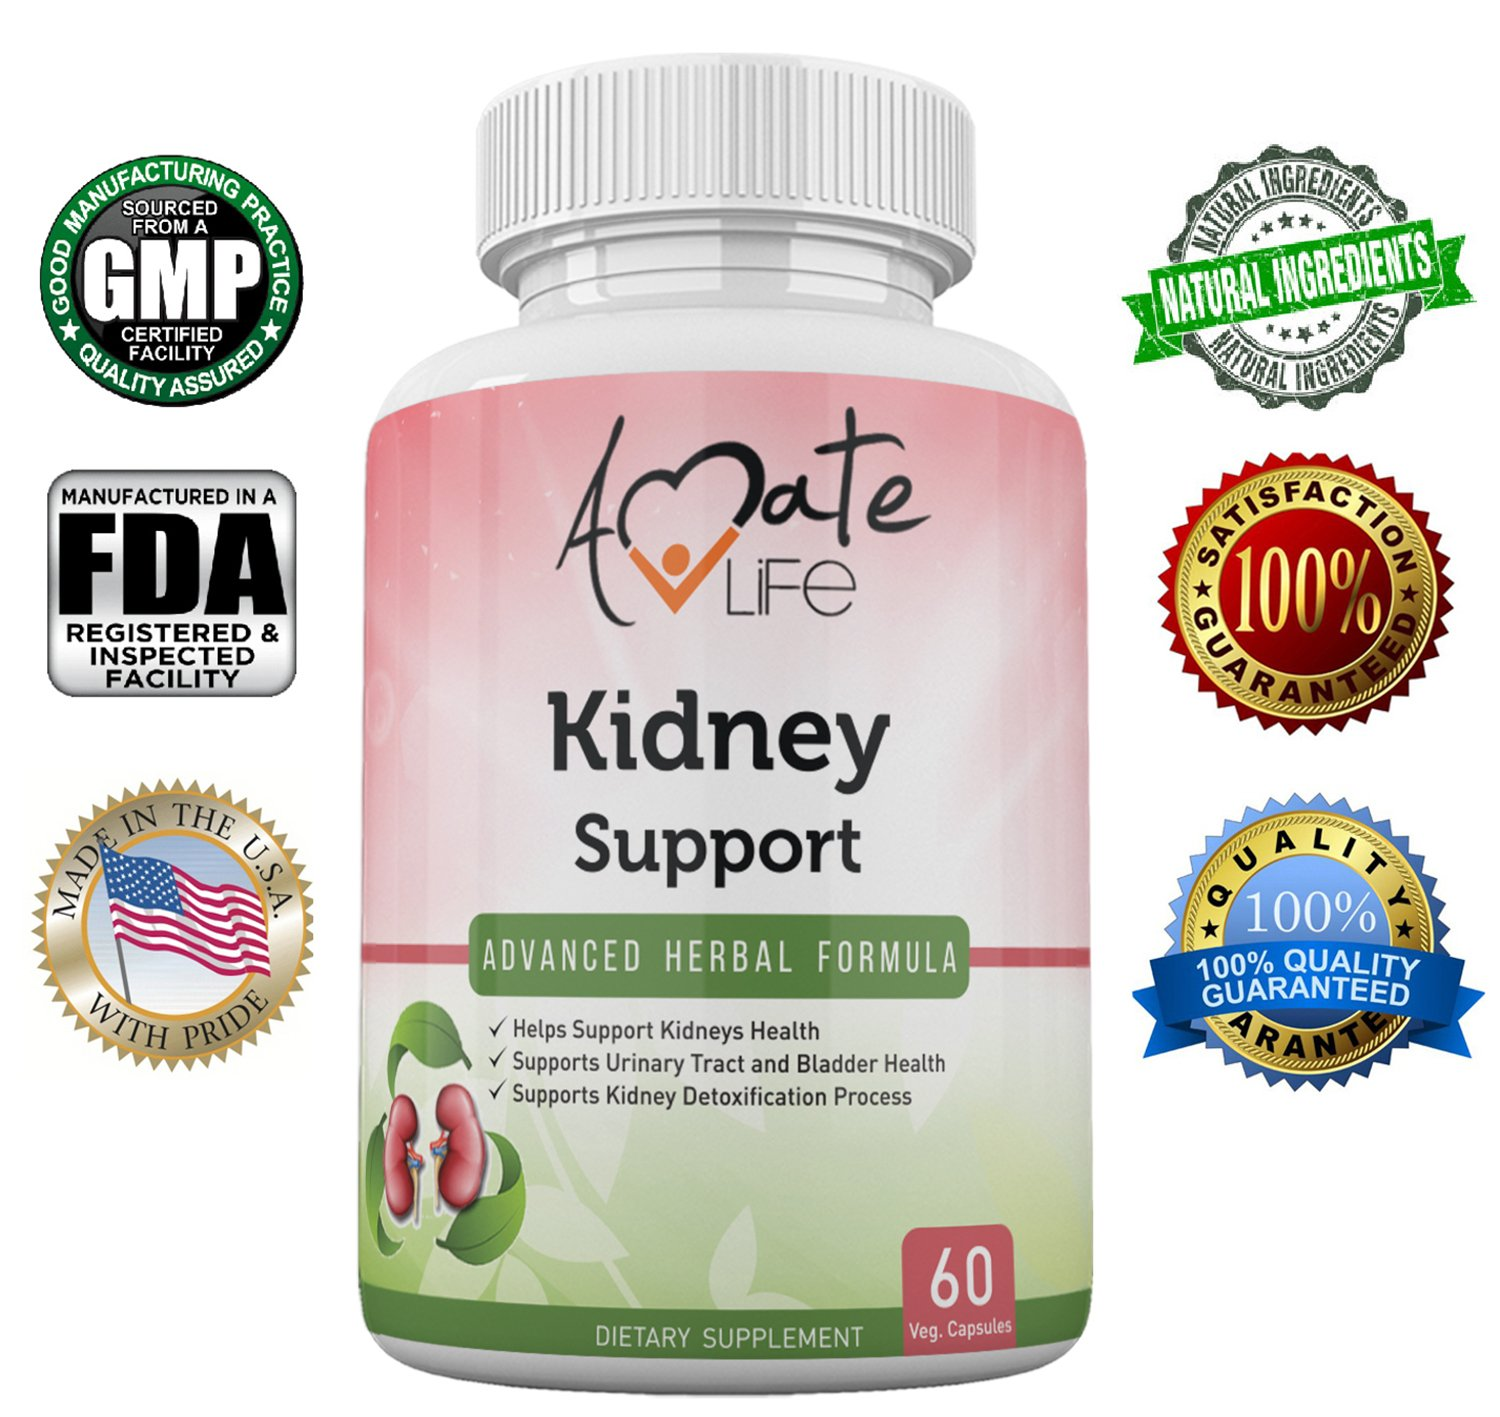 Kidney Support Advanced Herbal Formula- All-Natural Plant-Based Dietary Supplement- Cranberry Extract- Detox and Cleanse Body- Supports Healthy Kidney and Urinary Tract- 60 Vegetable Capsules